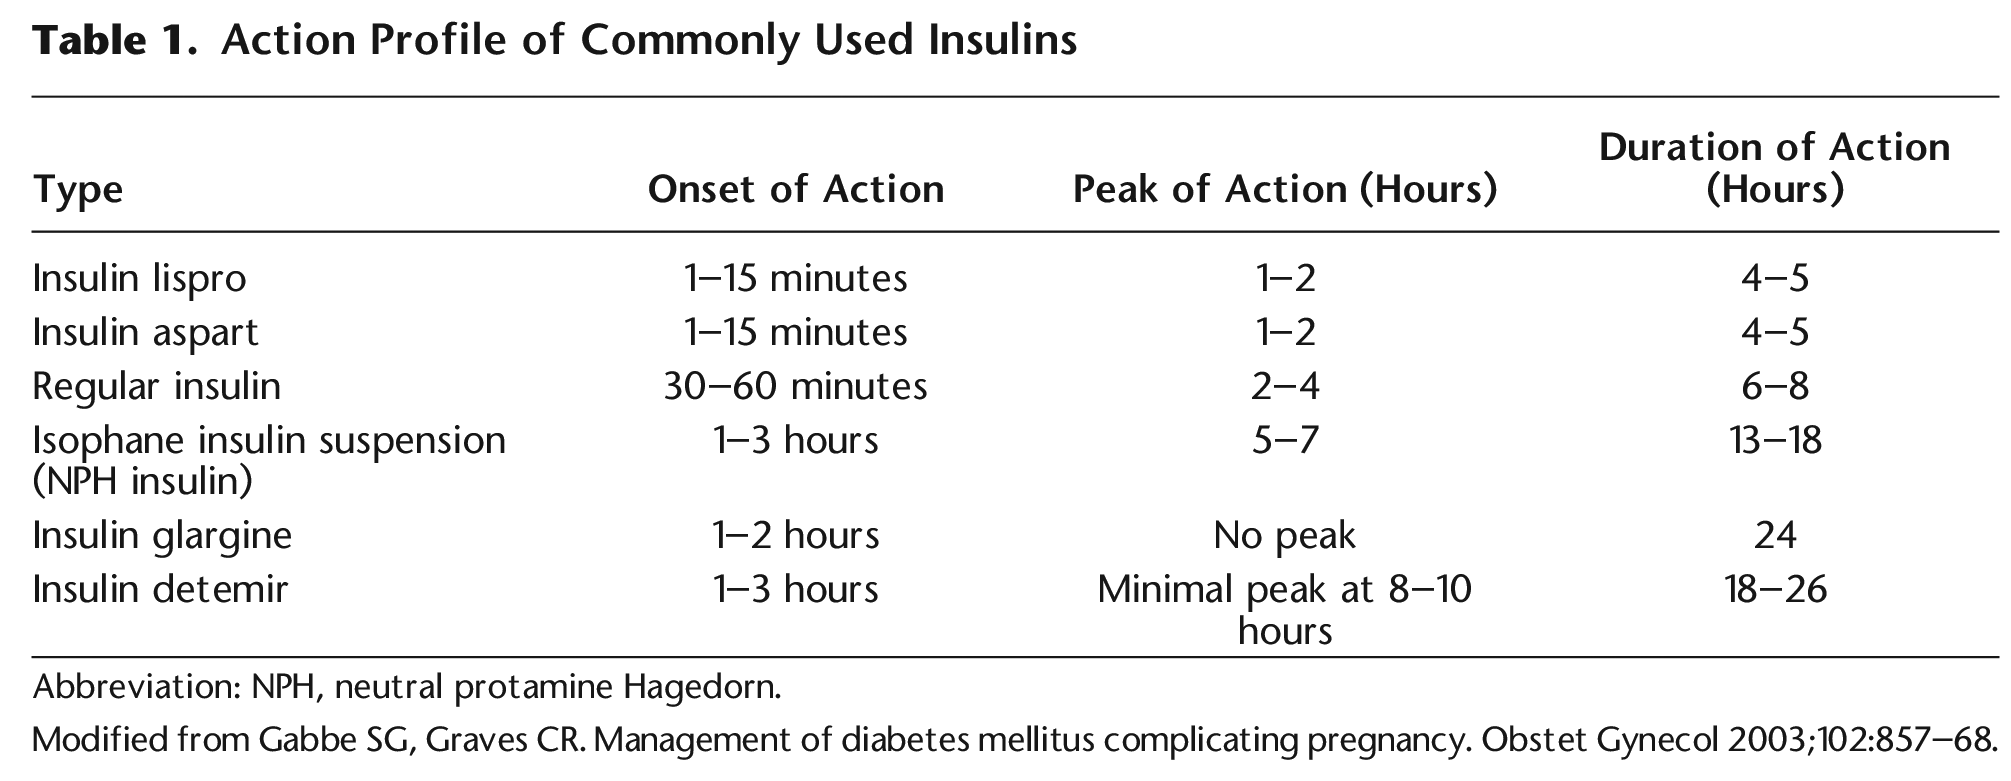 Table 1. Action Profile of Commonly Used Insulins